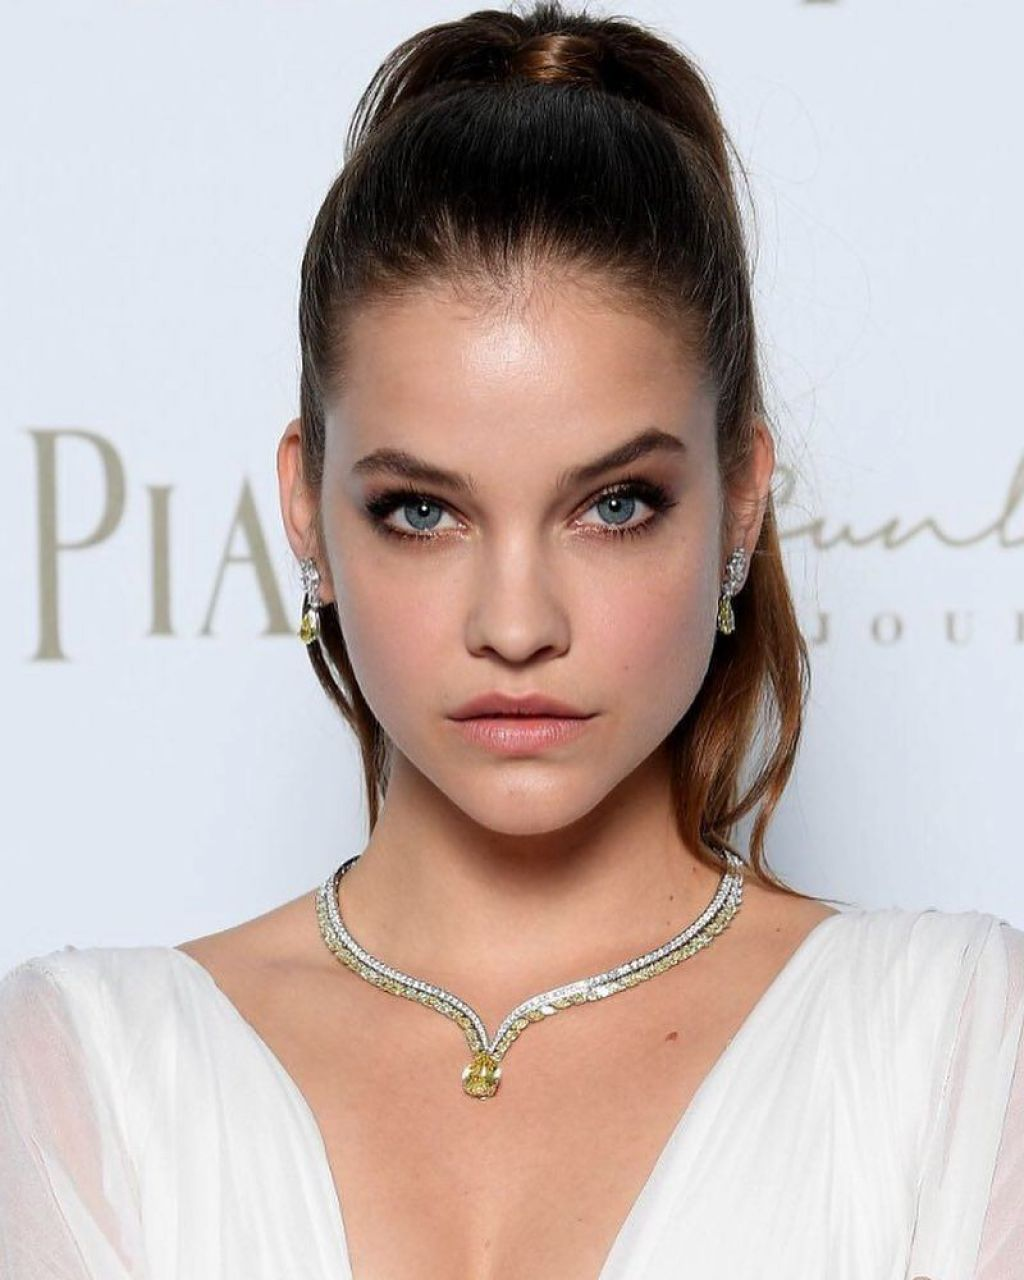 Barbara Palvin Latest Photos Celebmafia